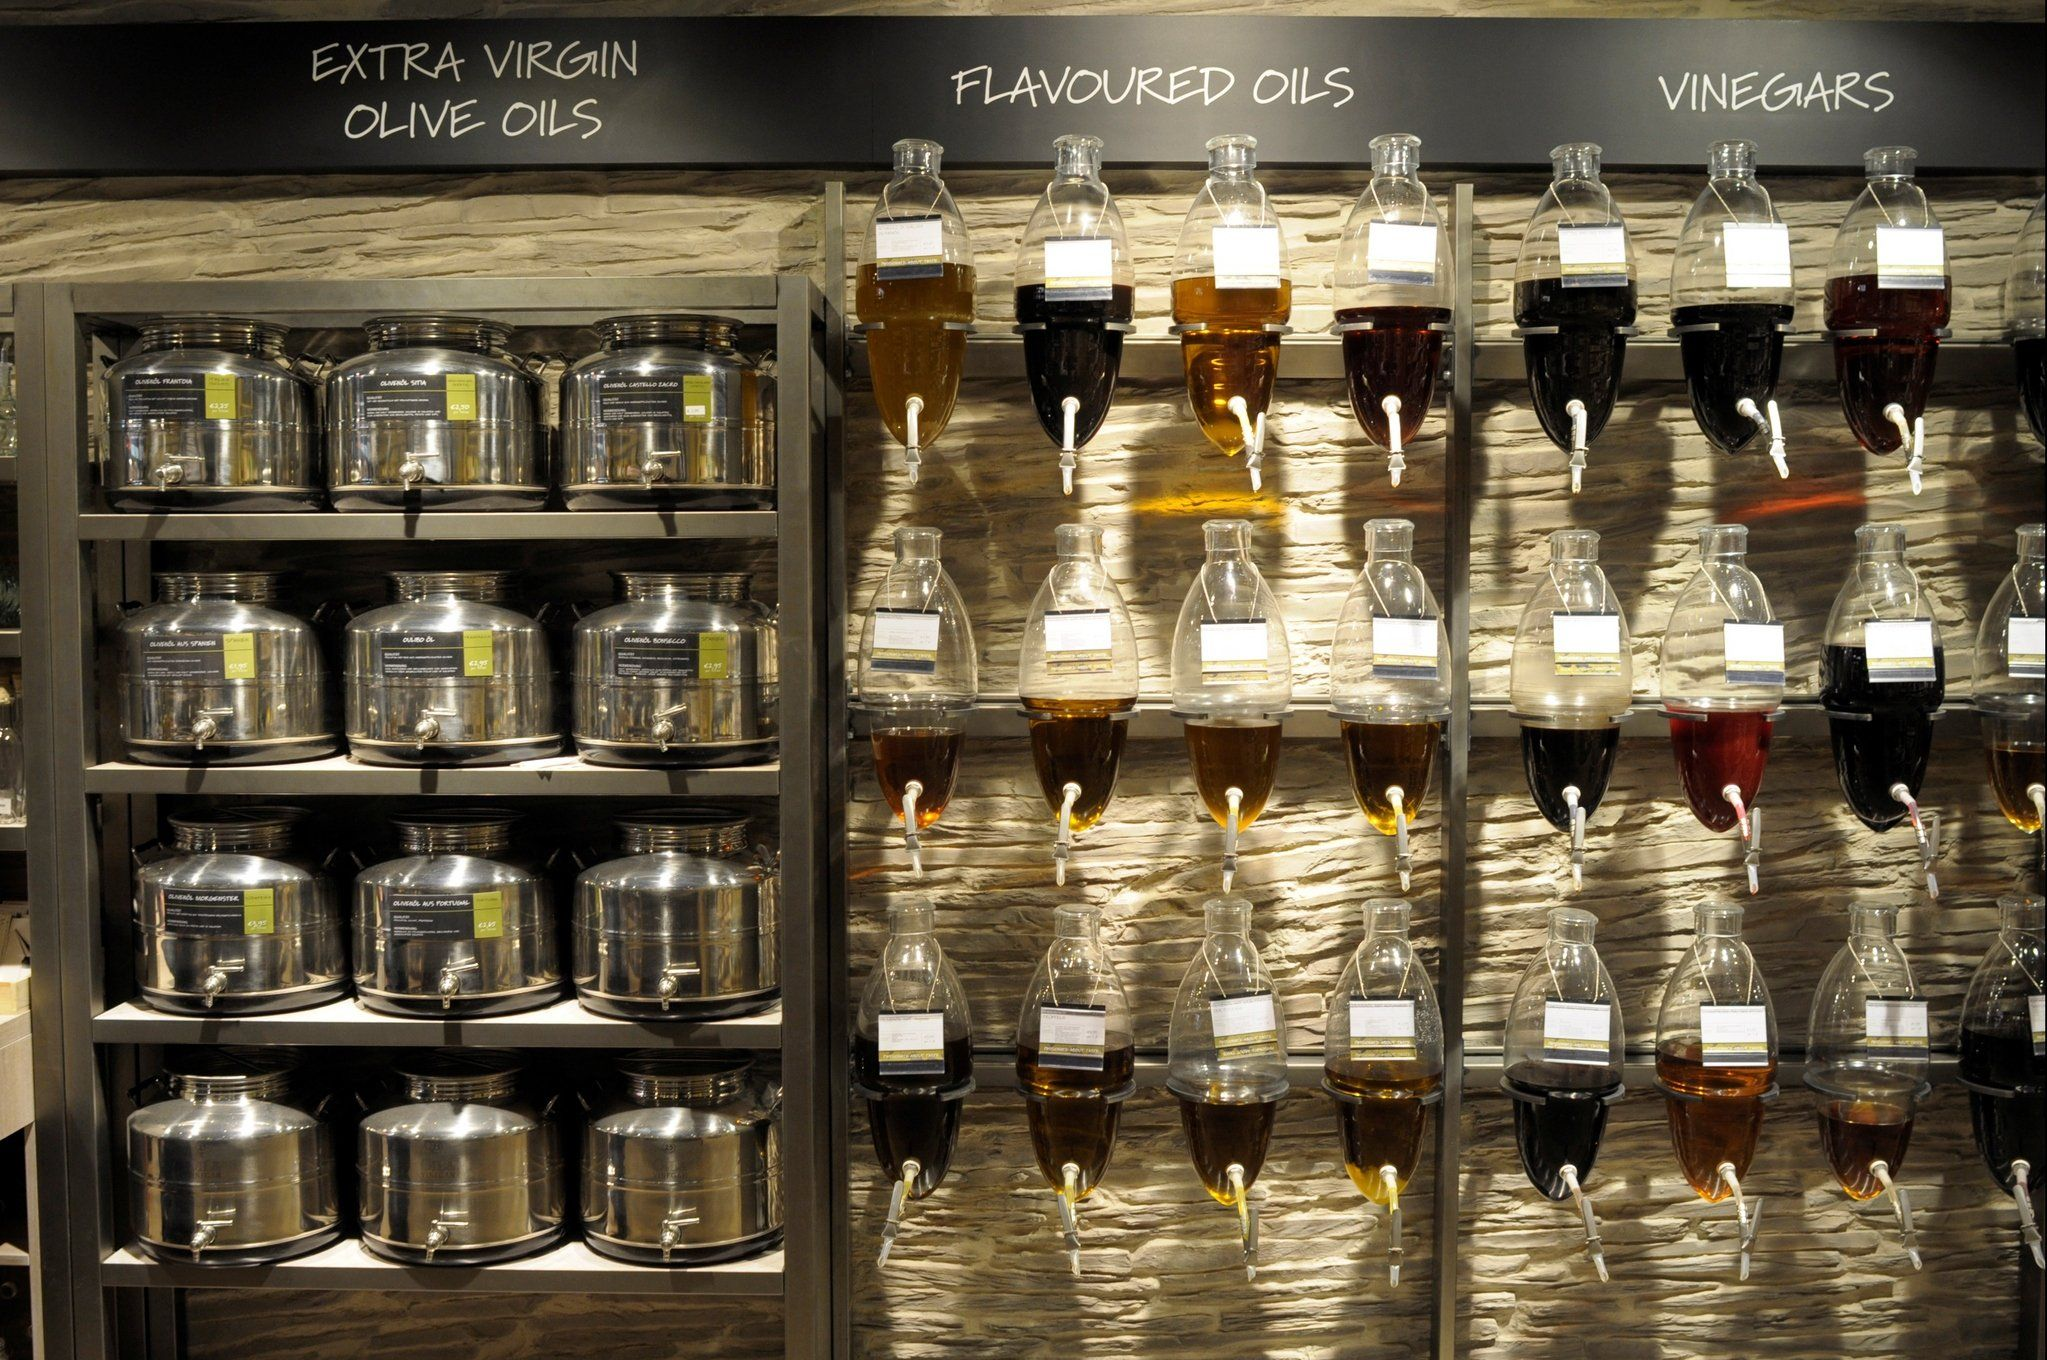 Oil And Vinegar Open And Shut Gourmet Food Store Oil And Vinegar Opens In